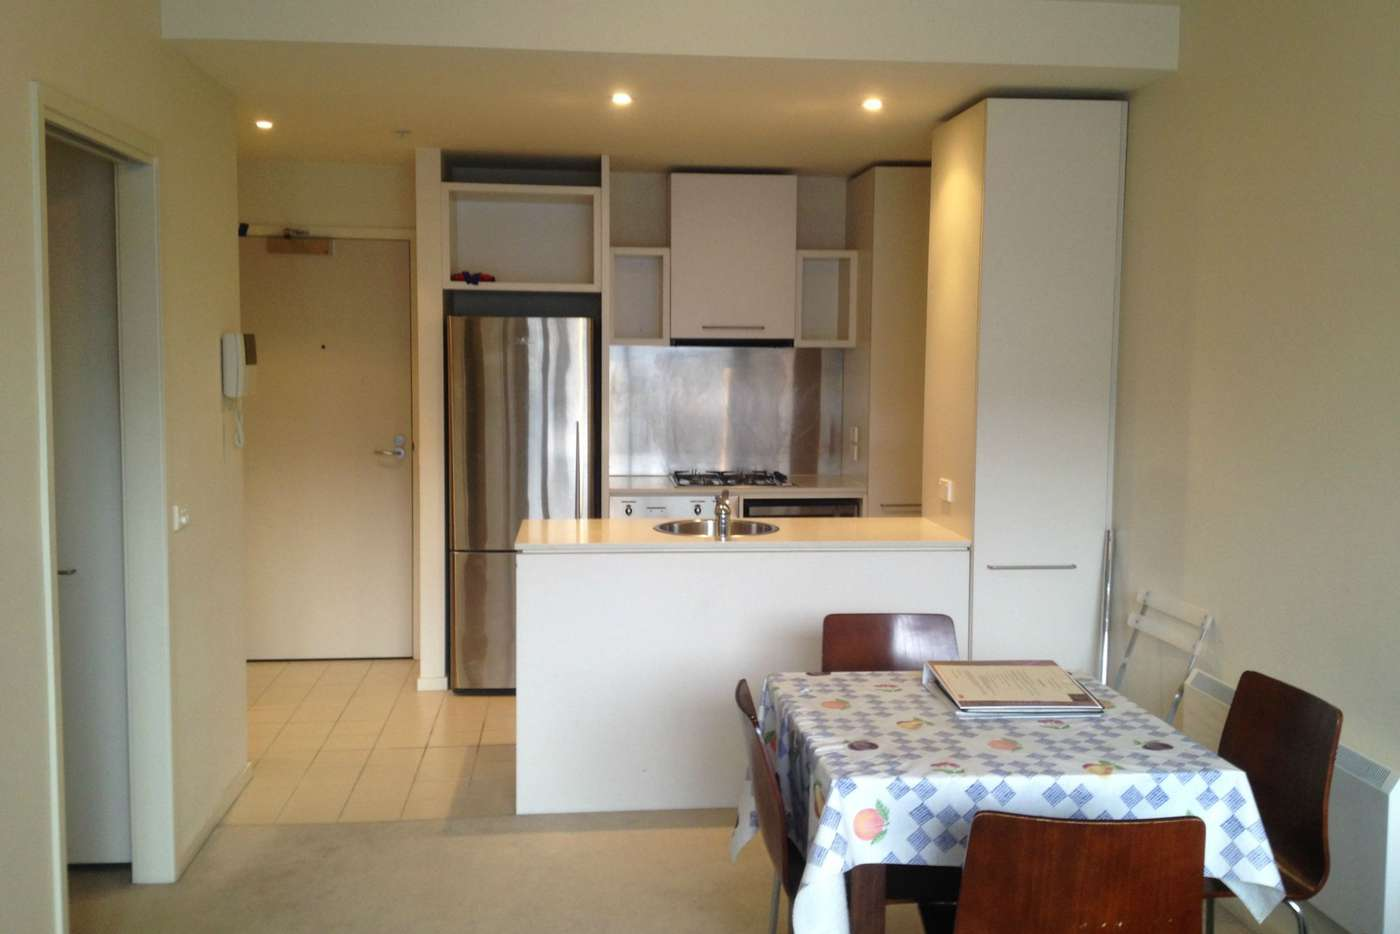 Main view of Homely unit listing, 708/1 Bouverie Street St, Carlton VIC 3053